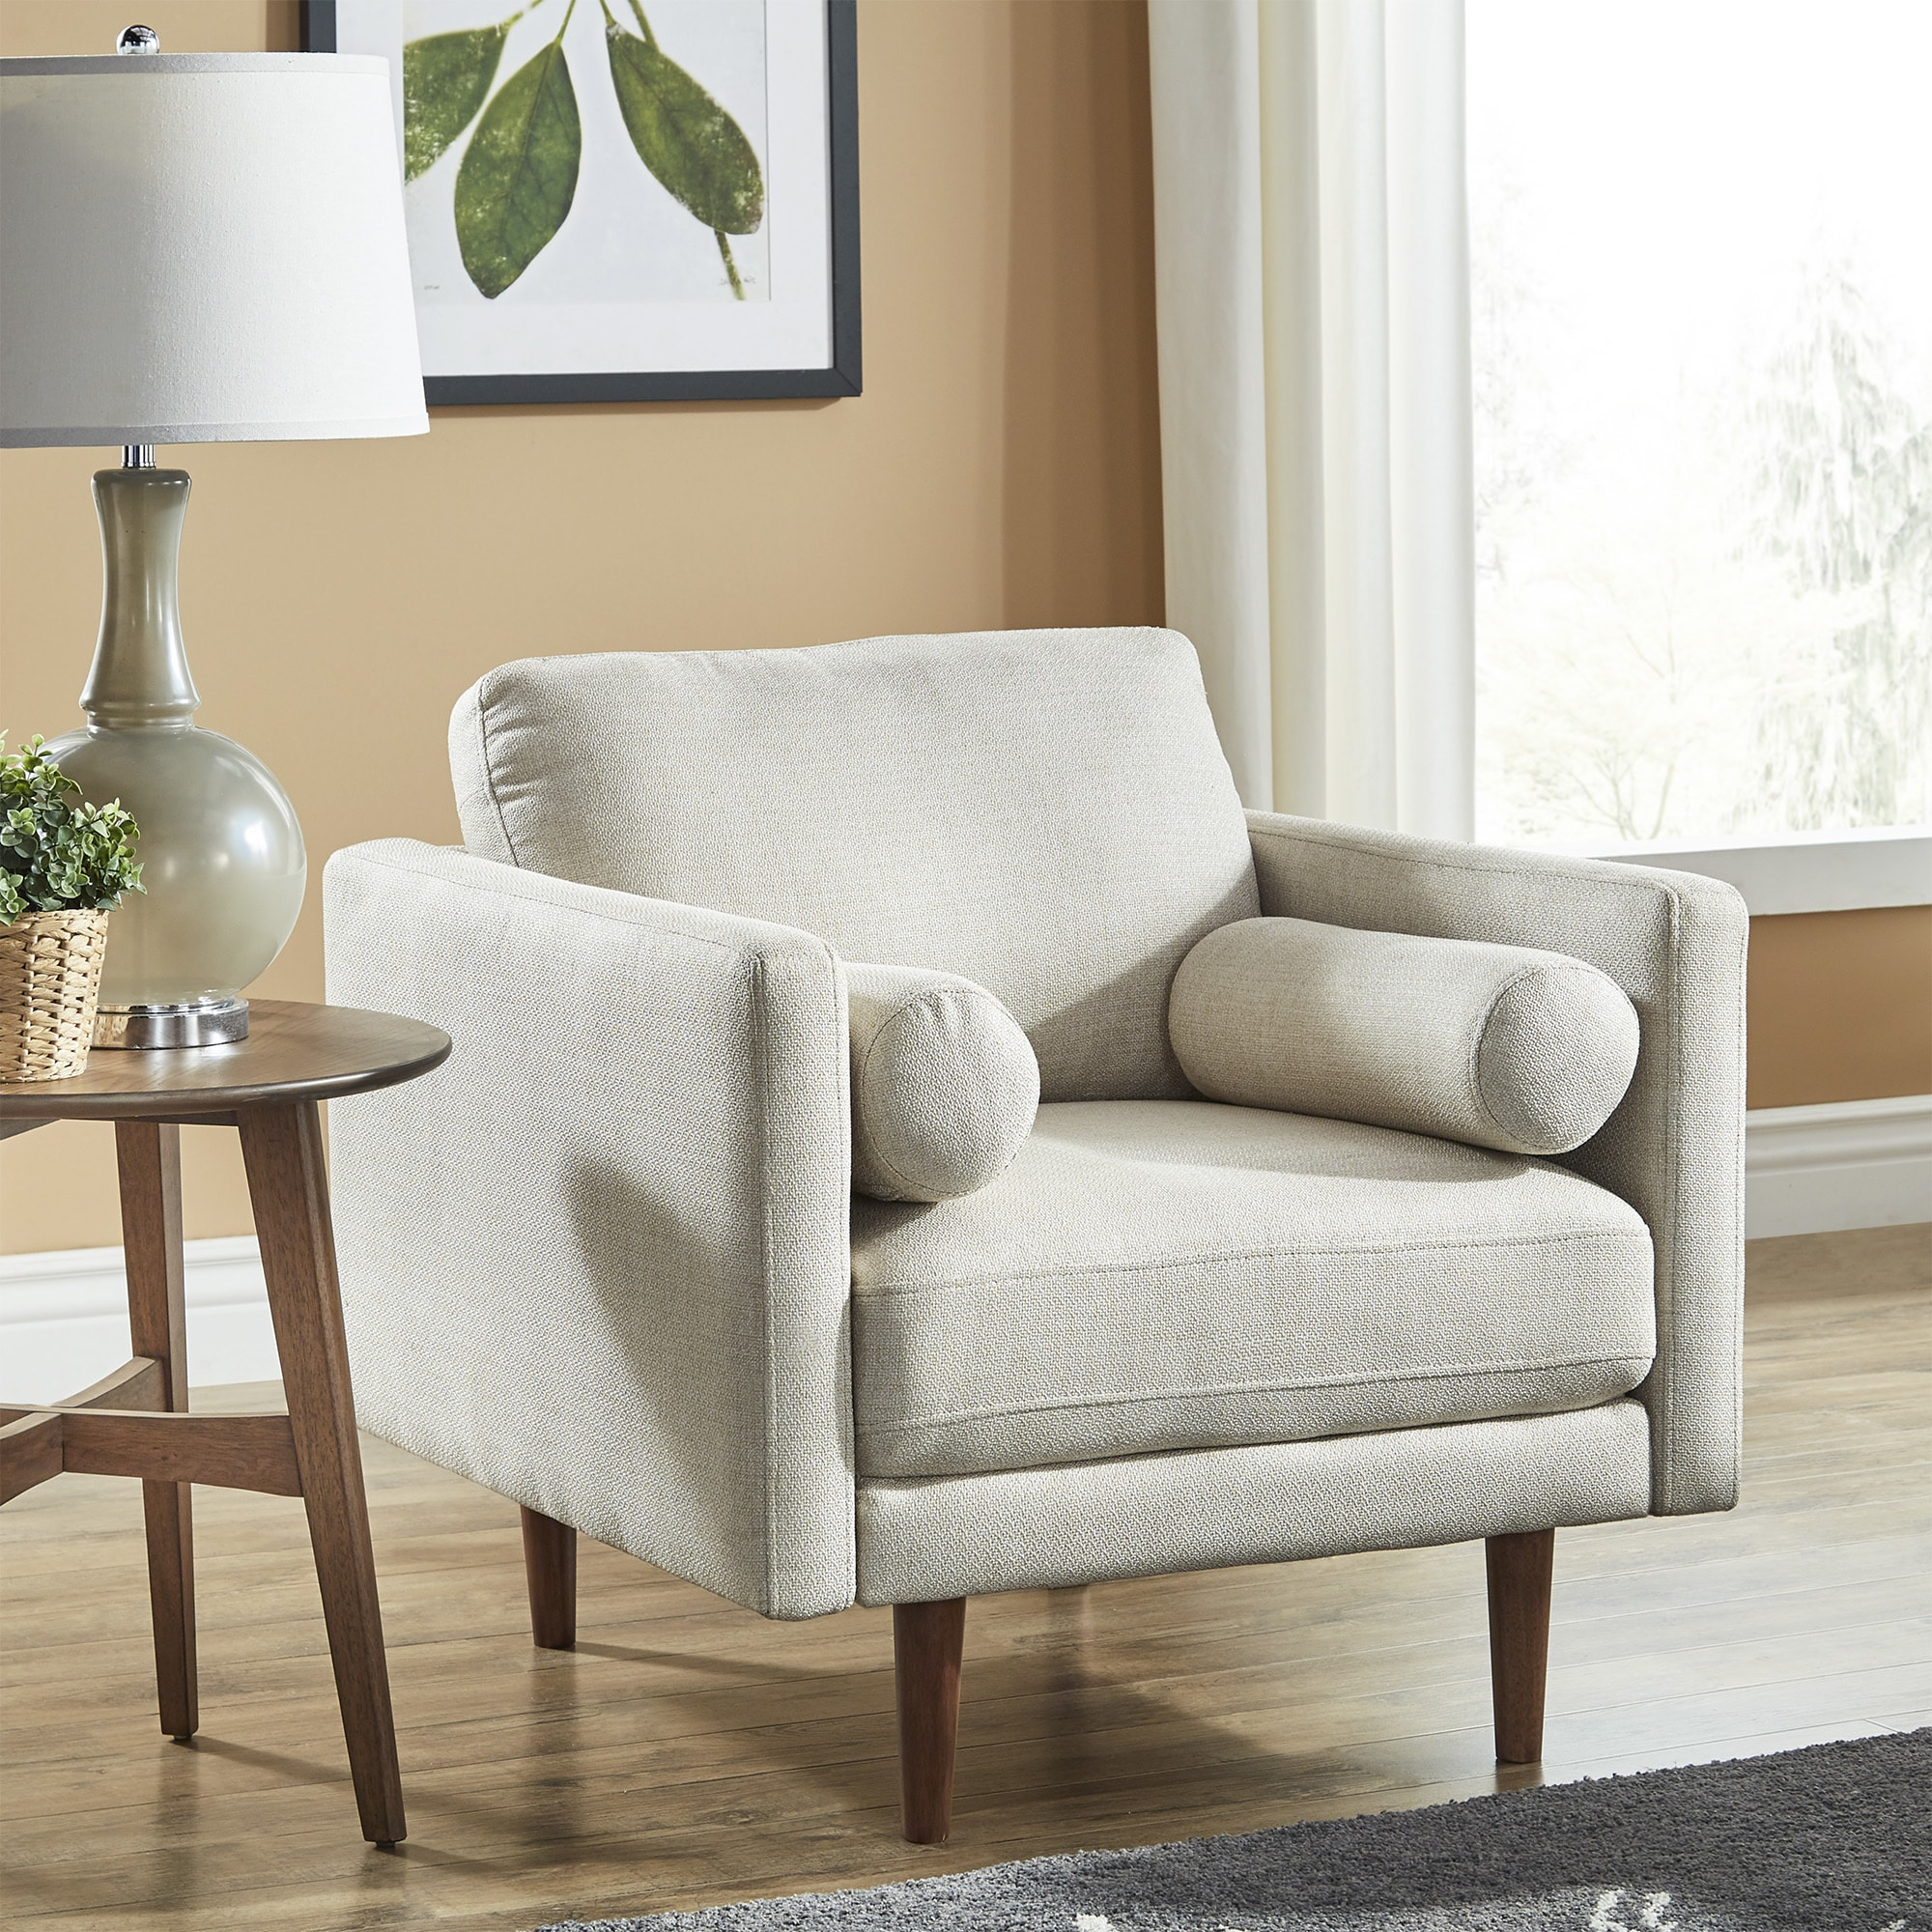 Oana Oatmeal Mid Century Tapered Leg Chair with